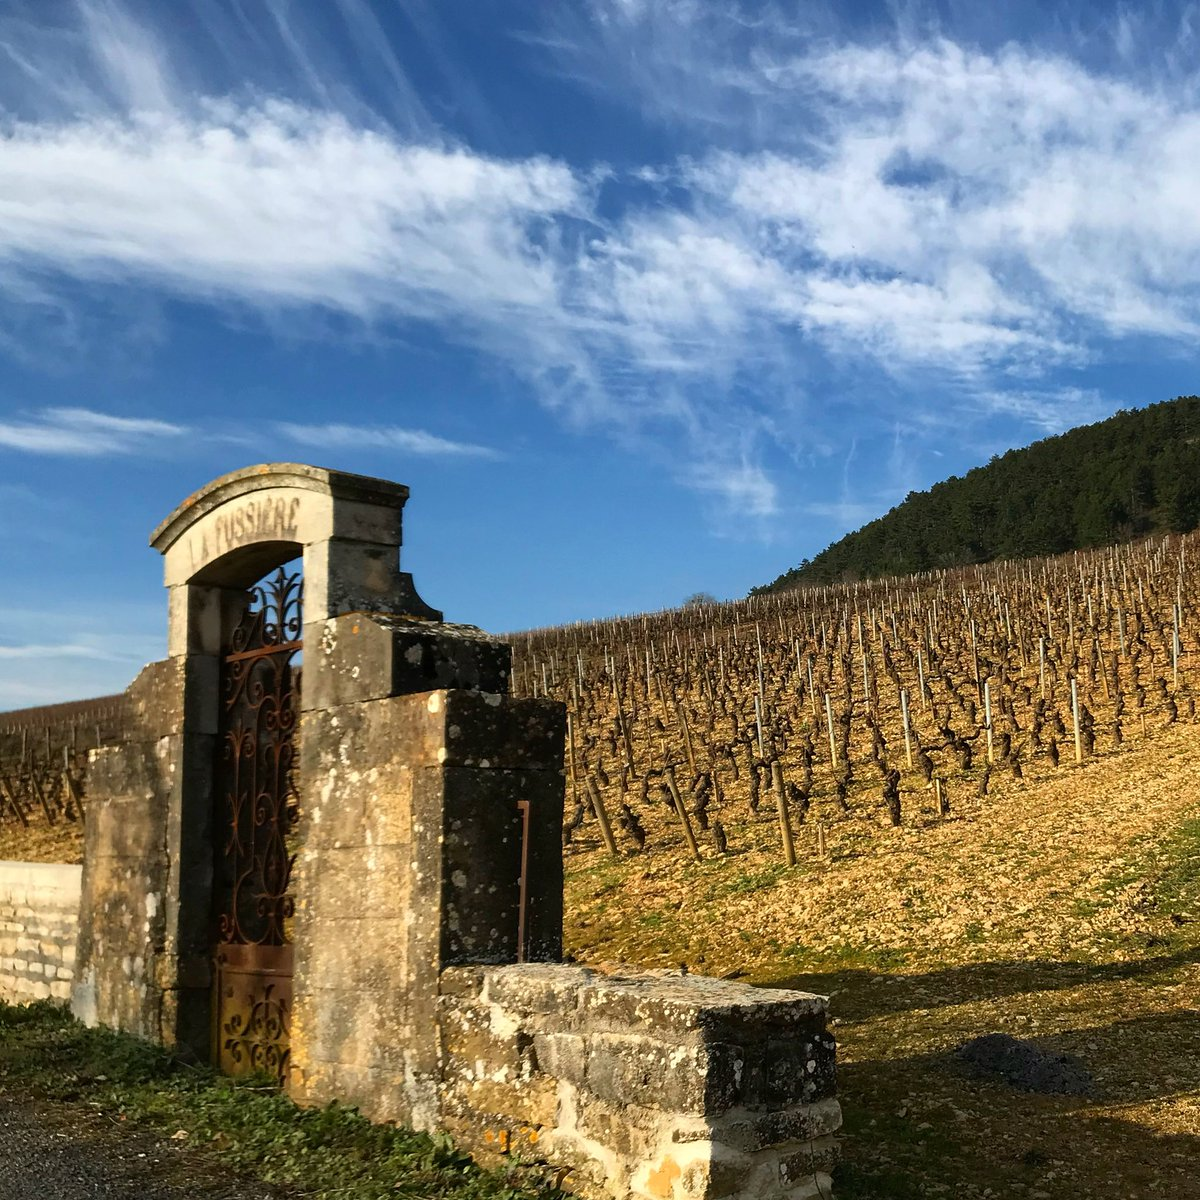 A glorious day in #burgundy in the #maranges in this plot of premier cru vines #lesfussieres where there are often these lovely sky scapes! #burgundy #bourgogne #bourgognefranchecomte #burgundywinetours #winelovers